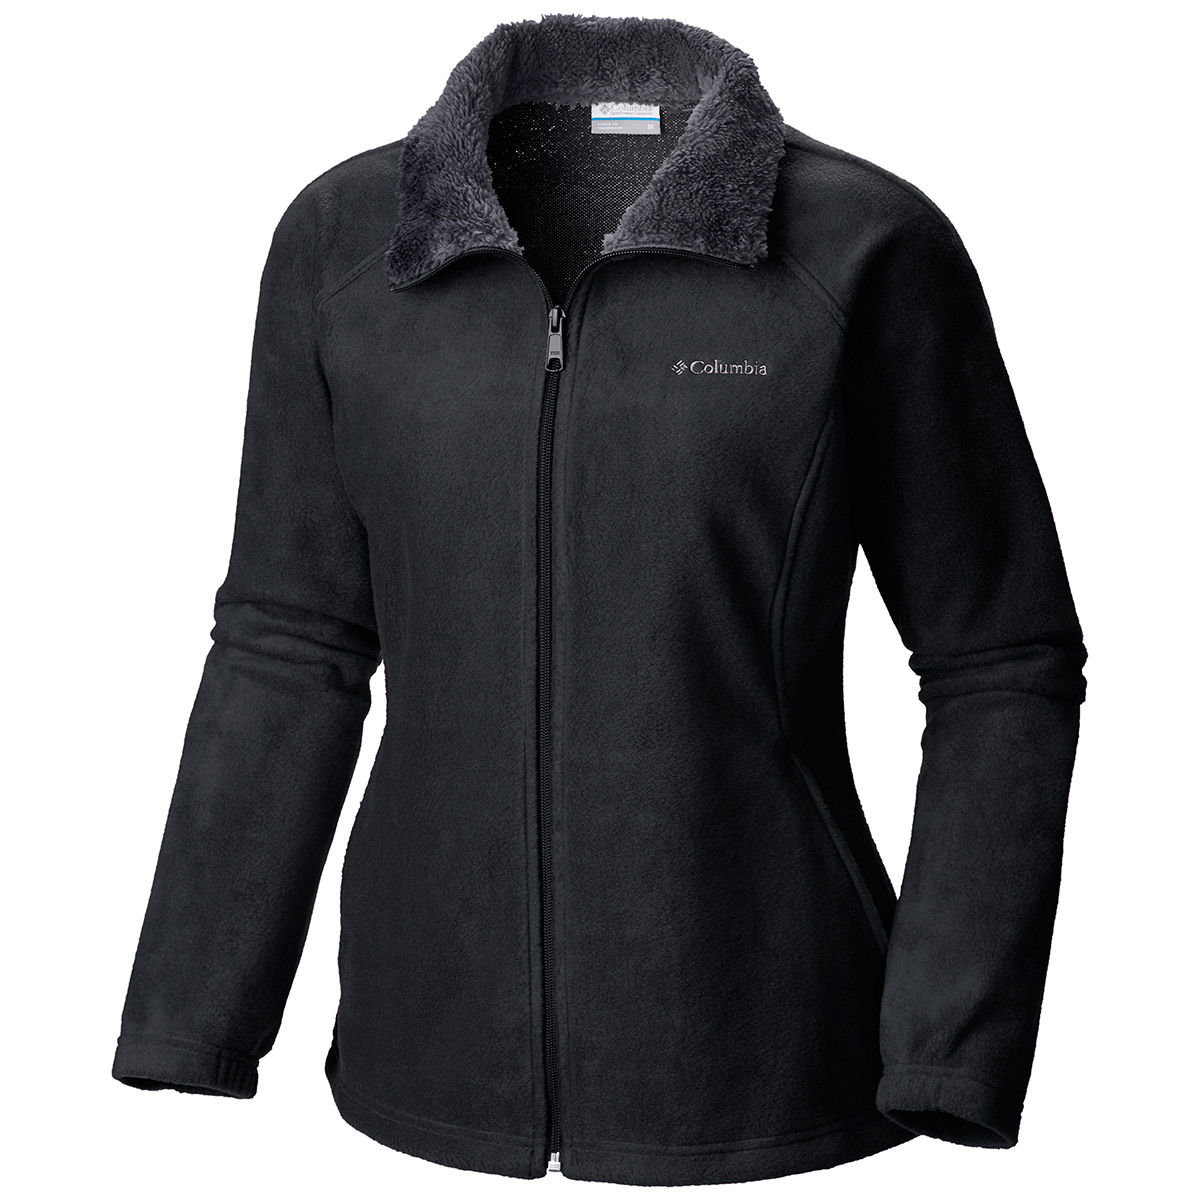 photo: Columbia Men's Dotswarm II Fleece Full Zip Jacket fleece jacket